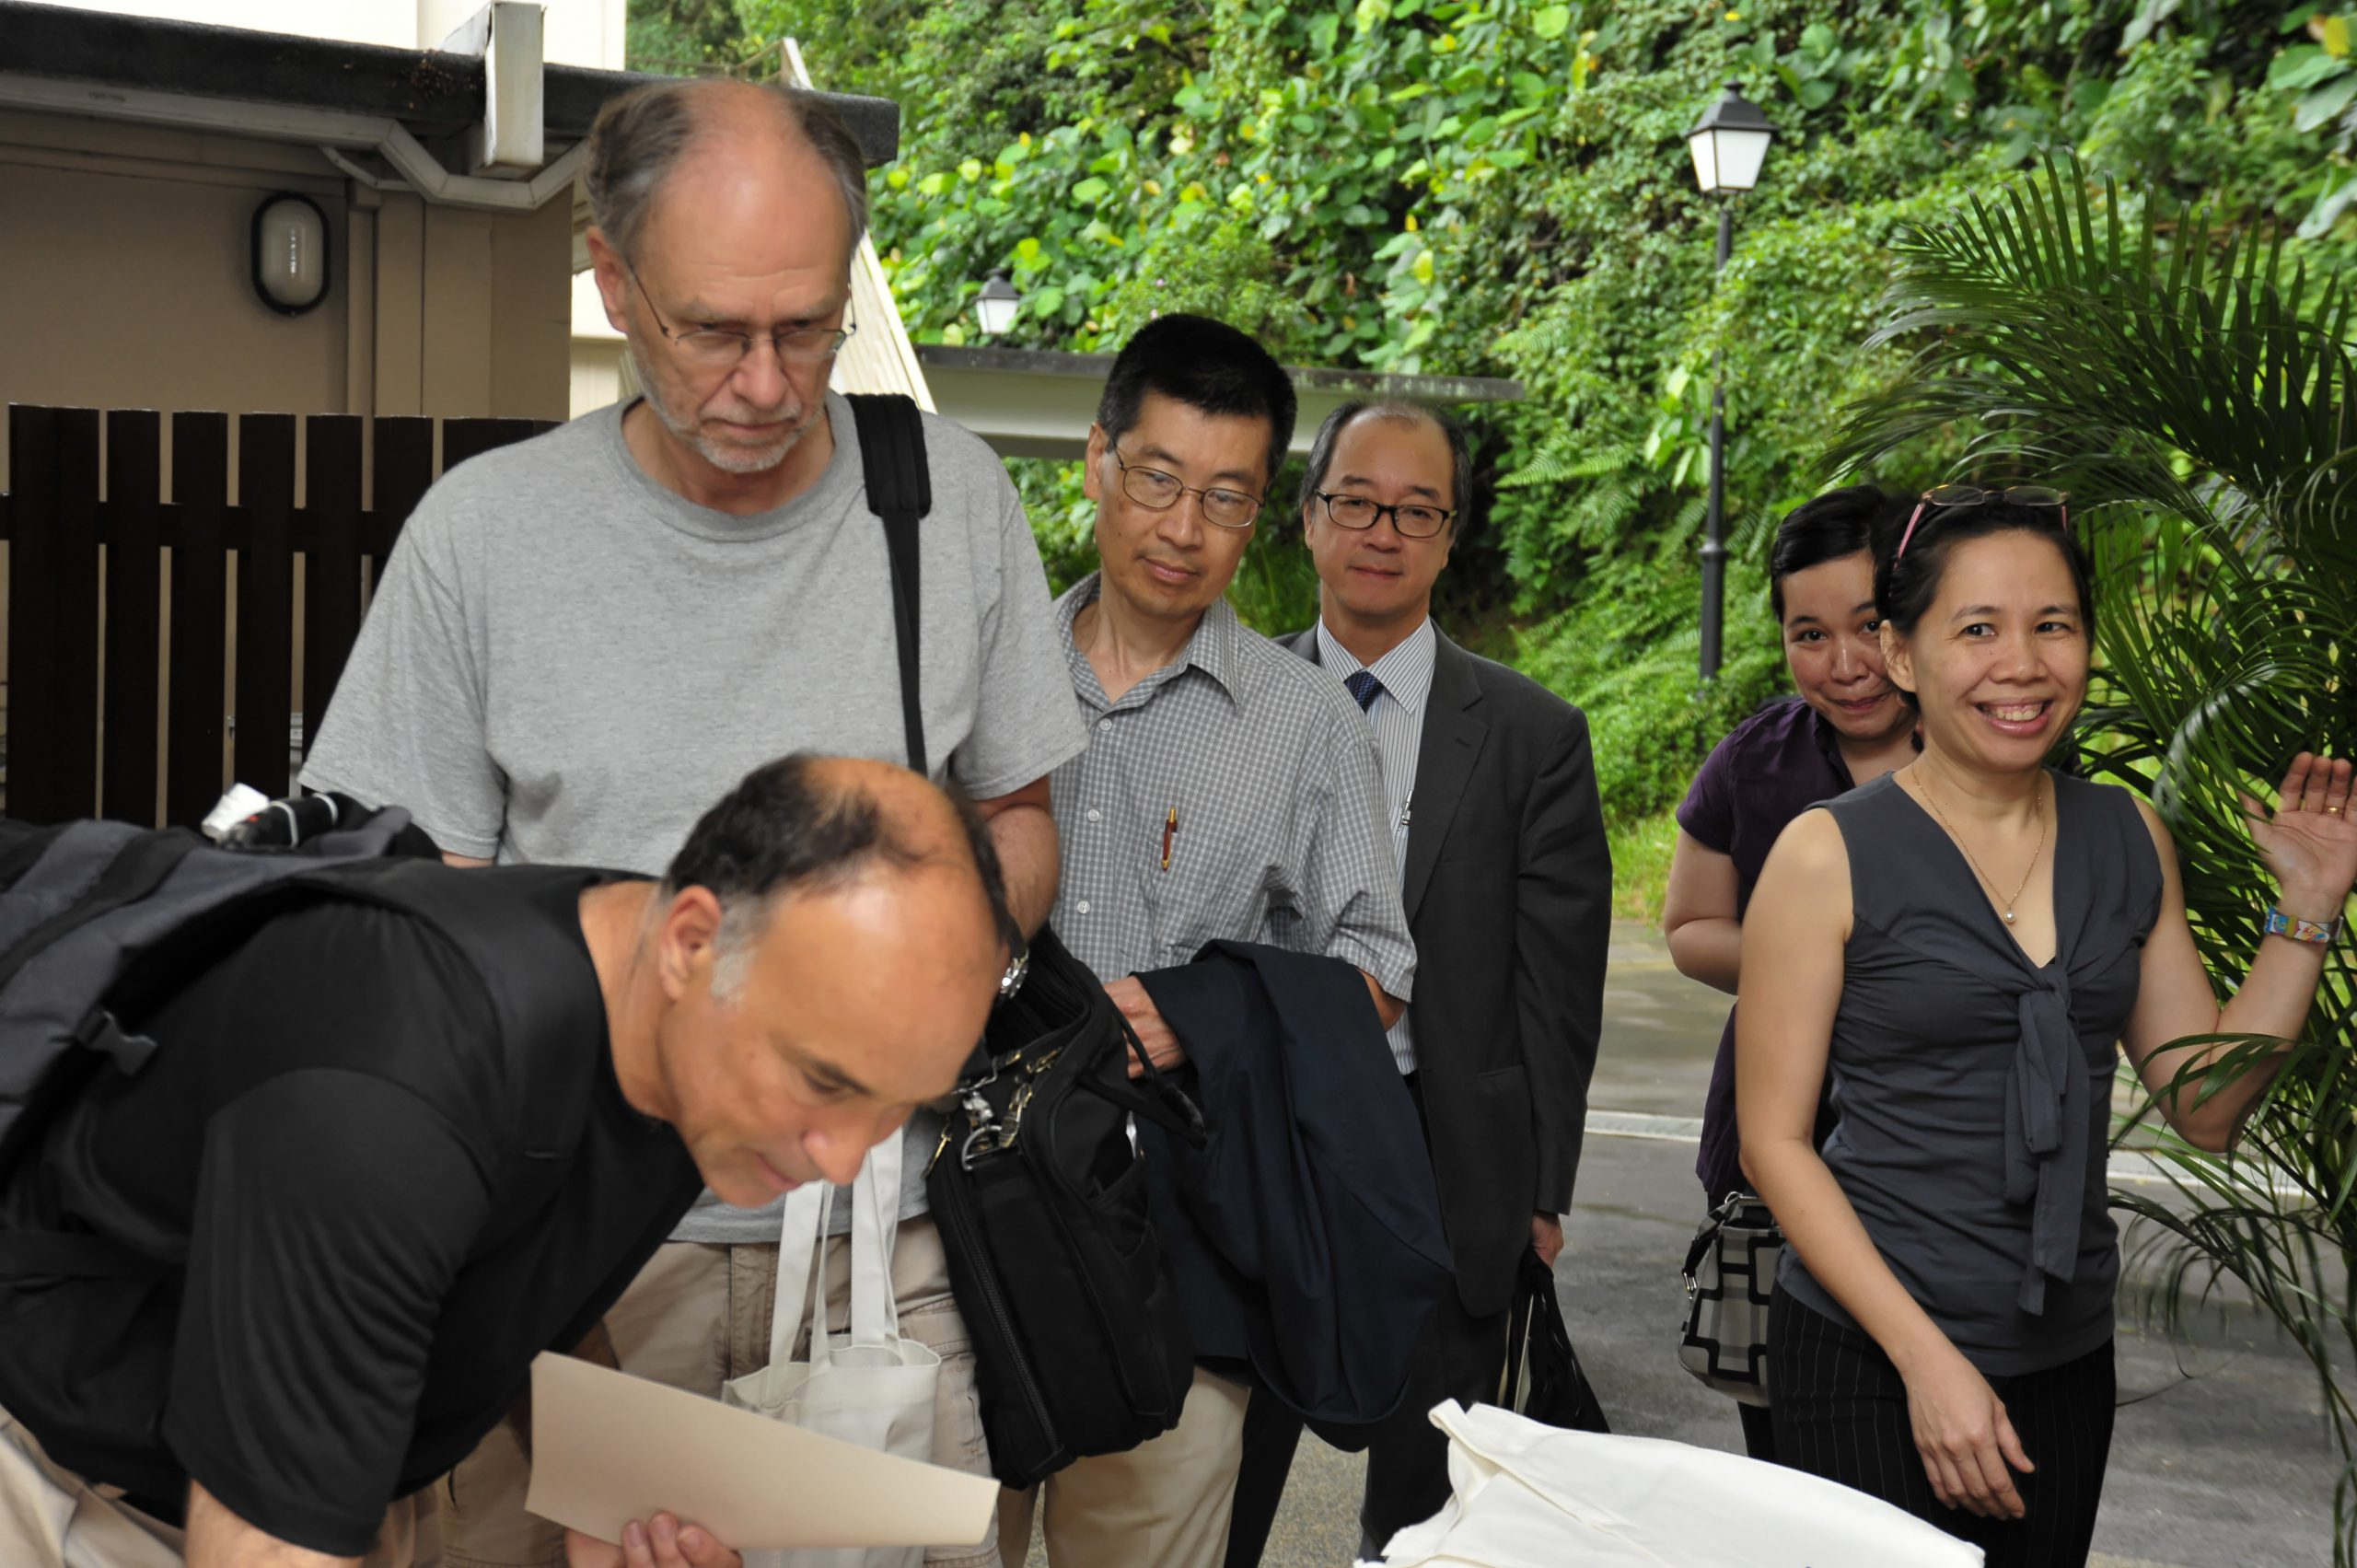 Guests signing in: (From left) Larry GOLDSTEIN, Michael WATERMAN, LOH Wei Yin , Tony CHAN, Mia PANG RAY, Ivy SUAN